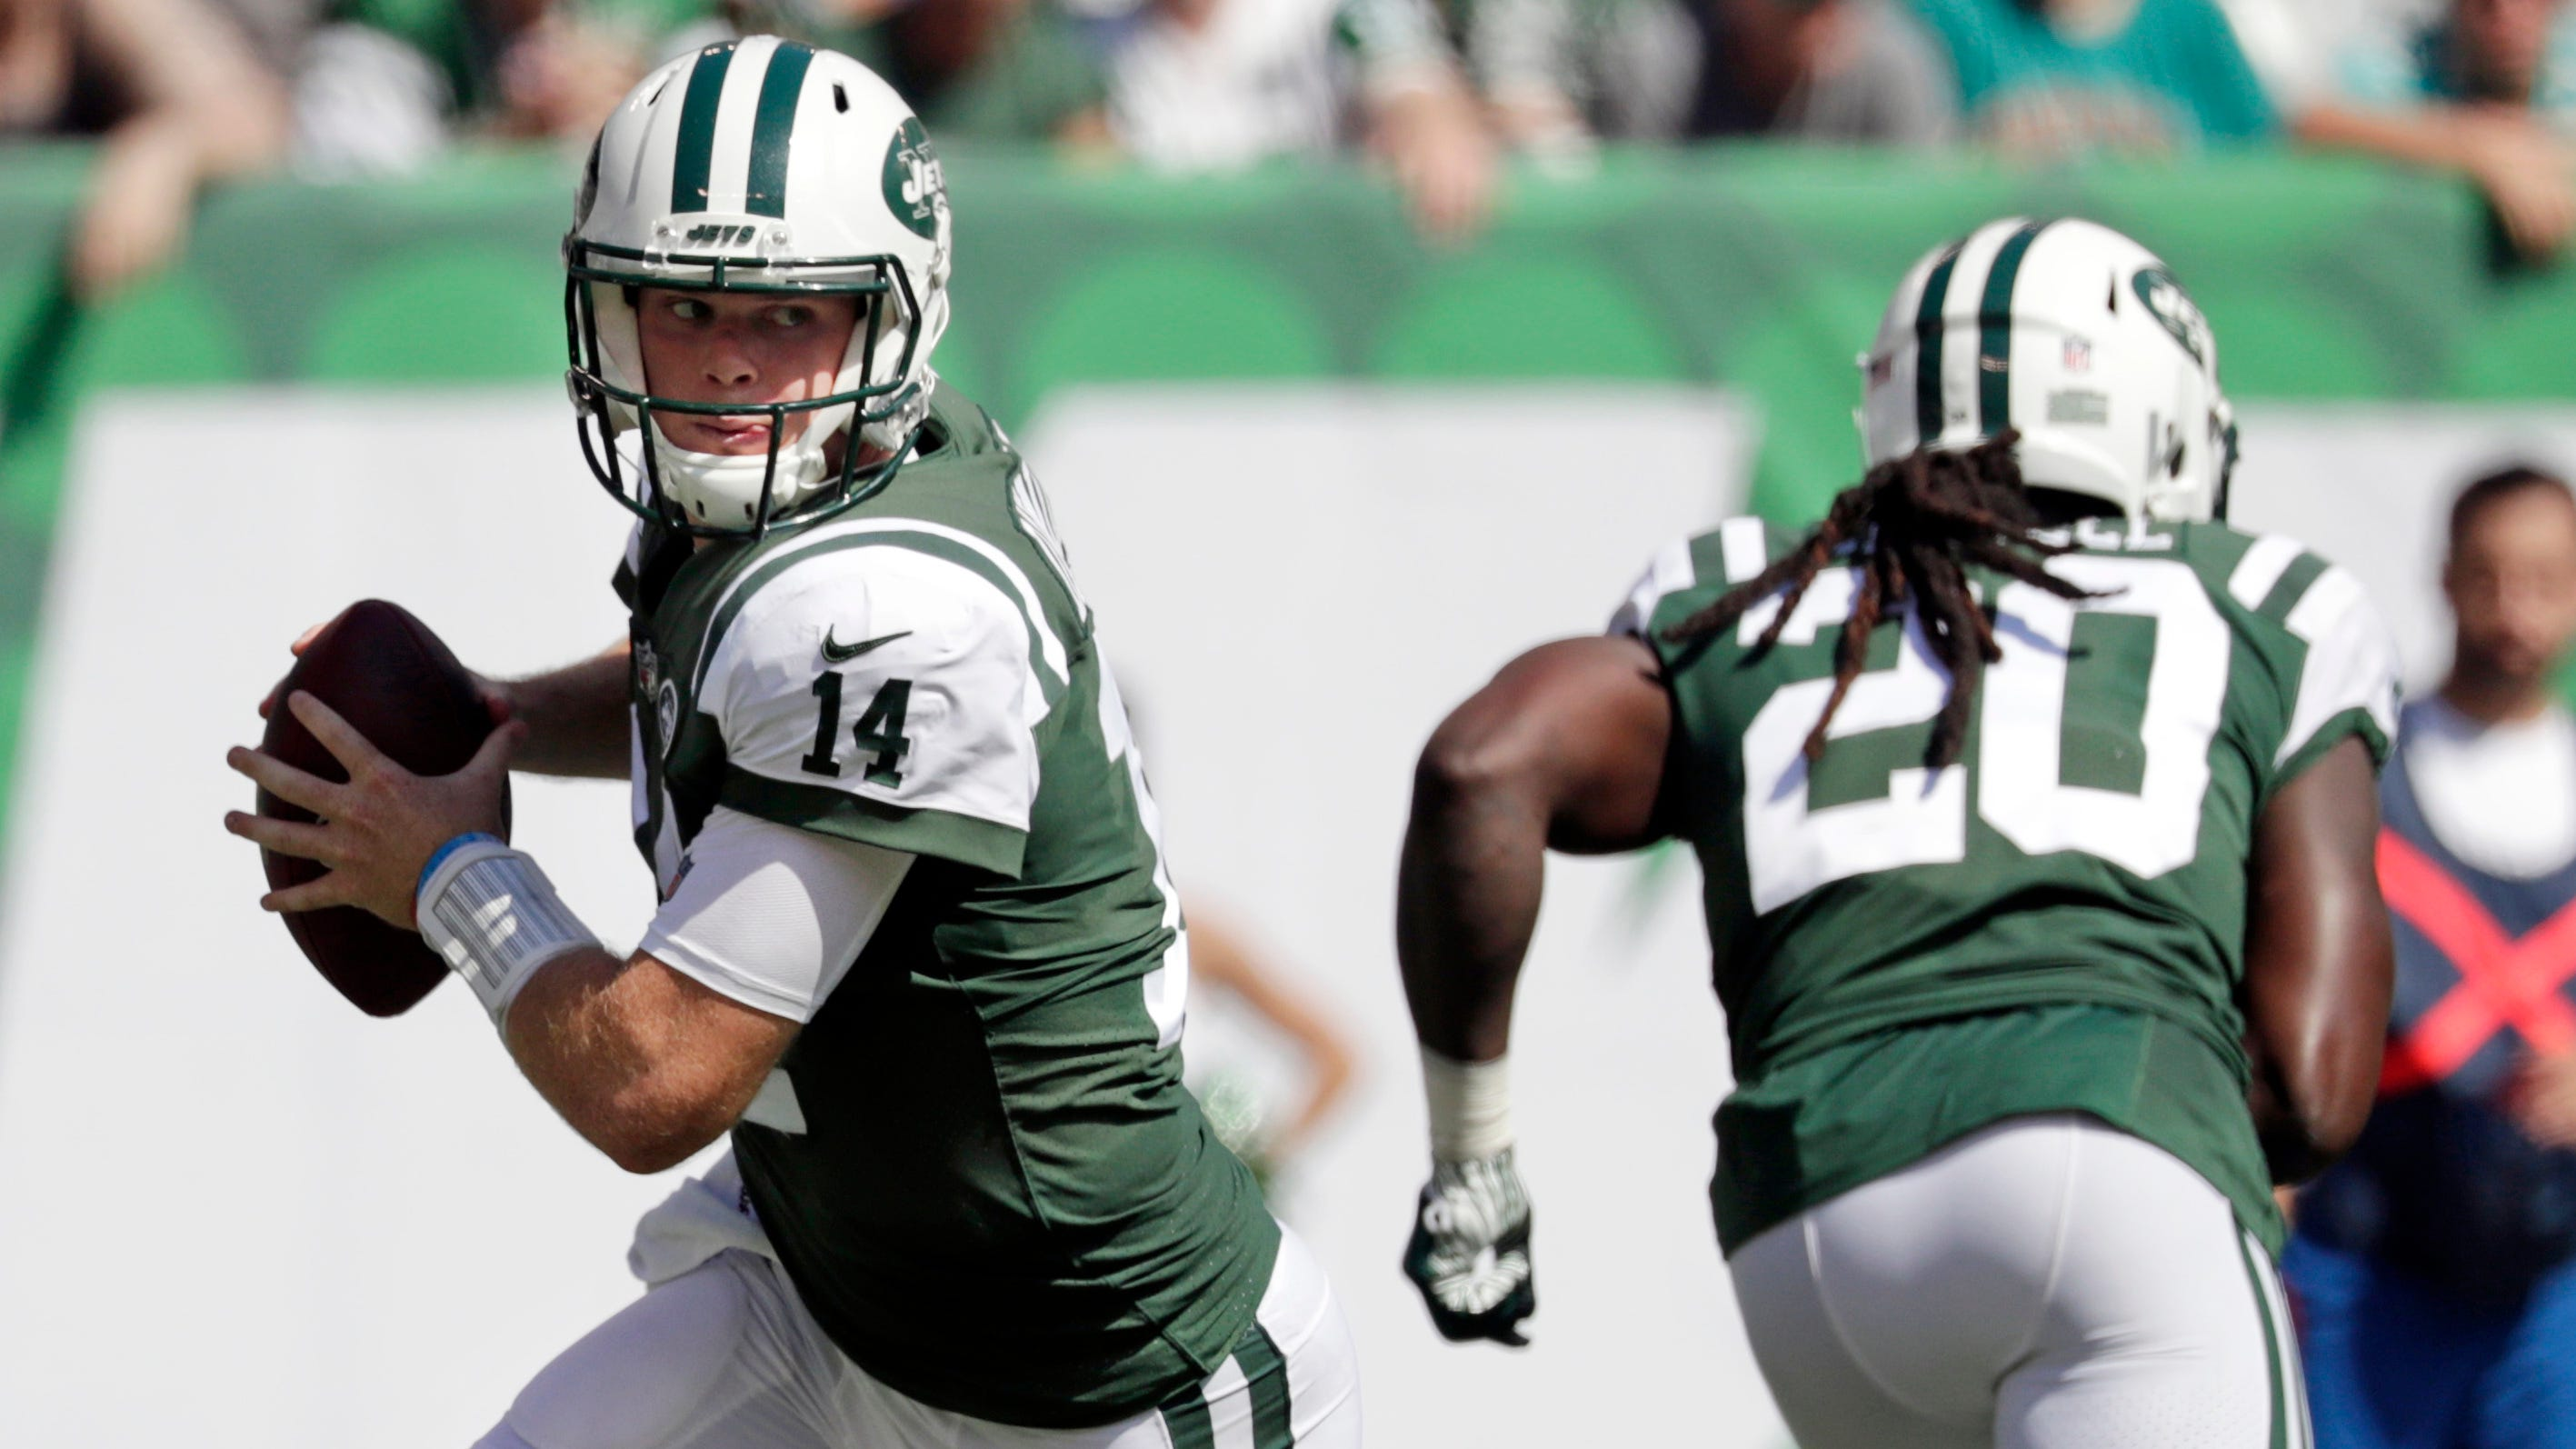 New York Jets' Sam Darnold during the first half of an NFL football game against the Miami Dolphins in East Rutherford, N.J. Sept. 16, 2018